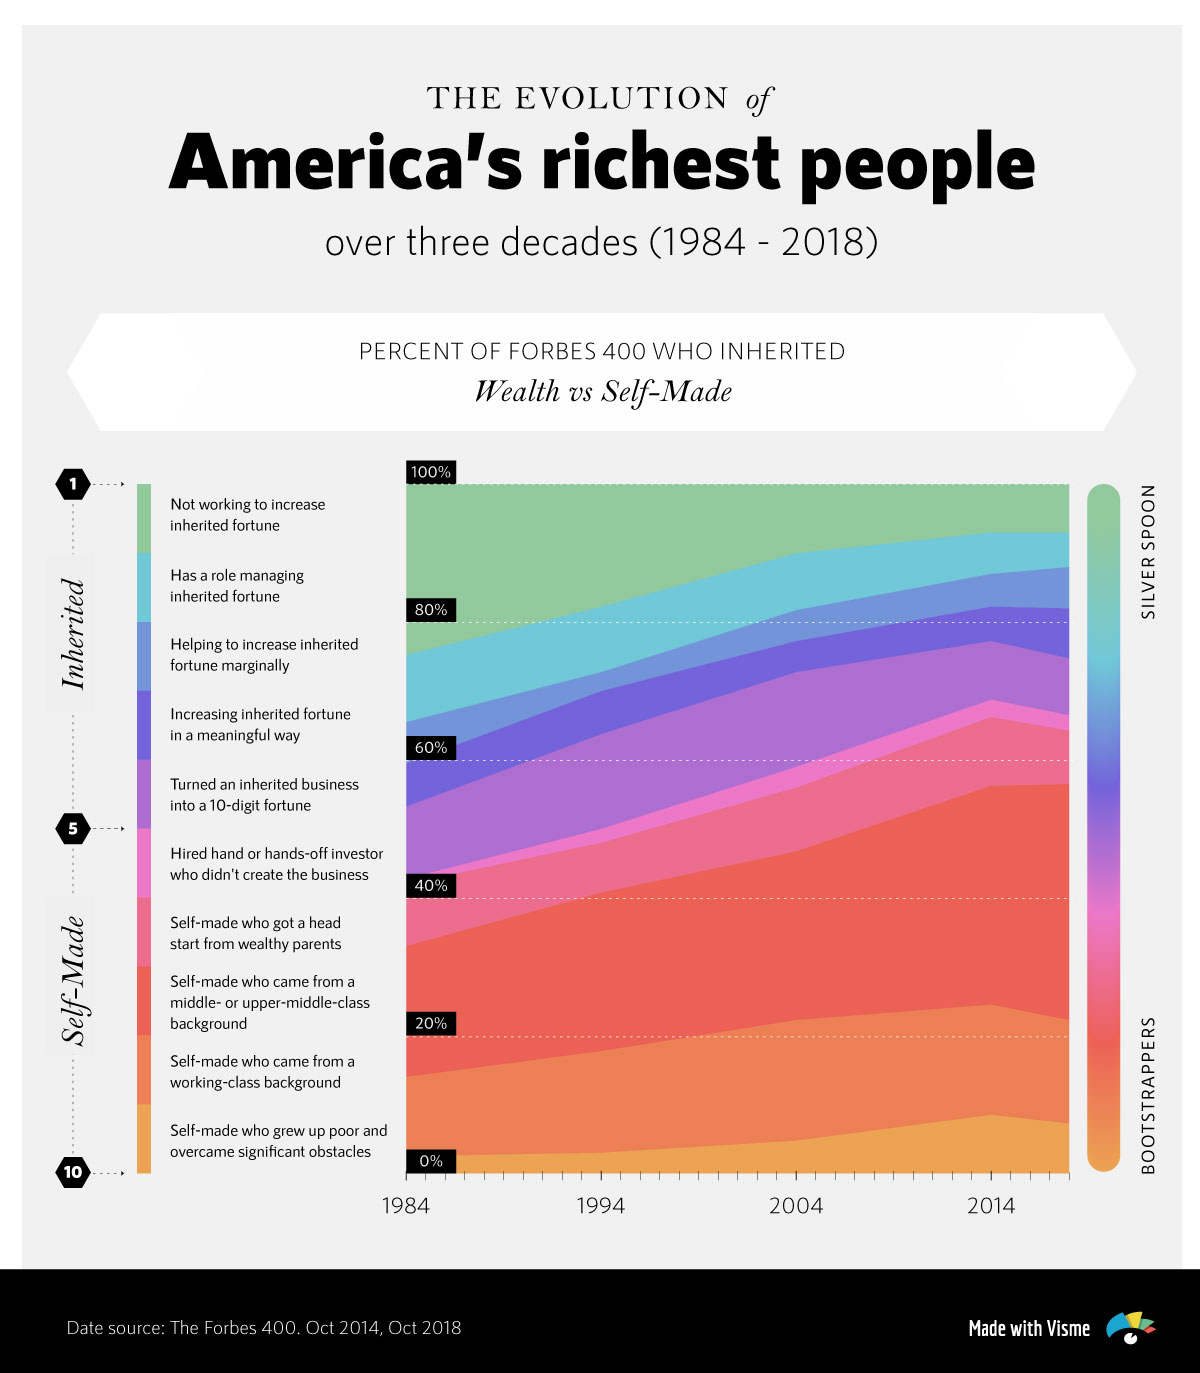 is college worth it should i go to college education of america's richest people area chart